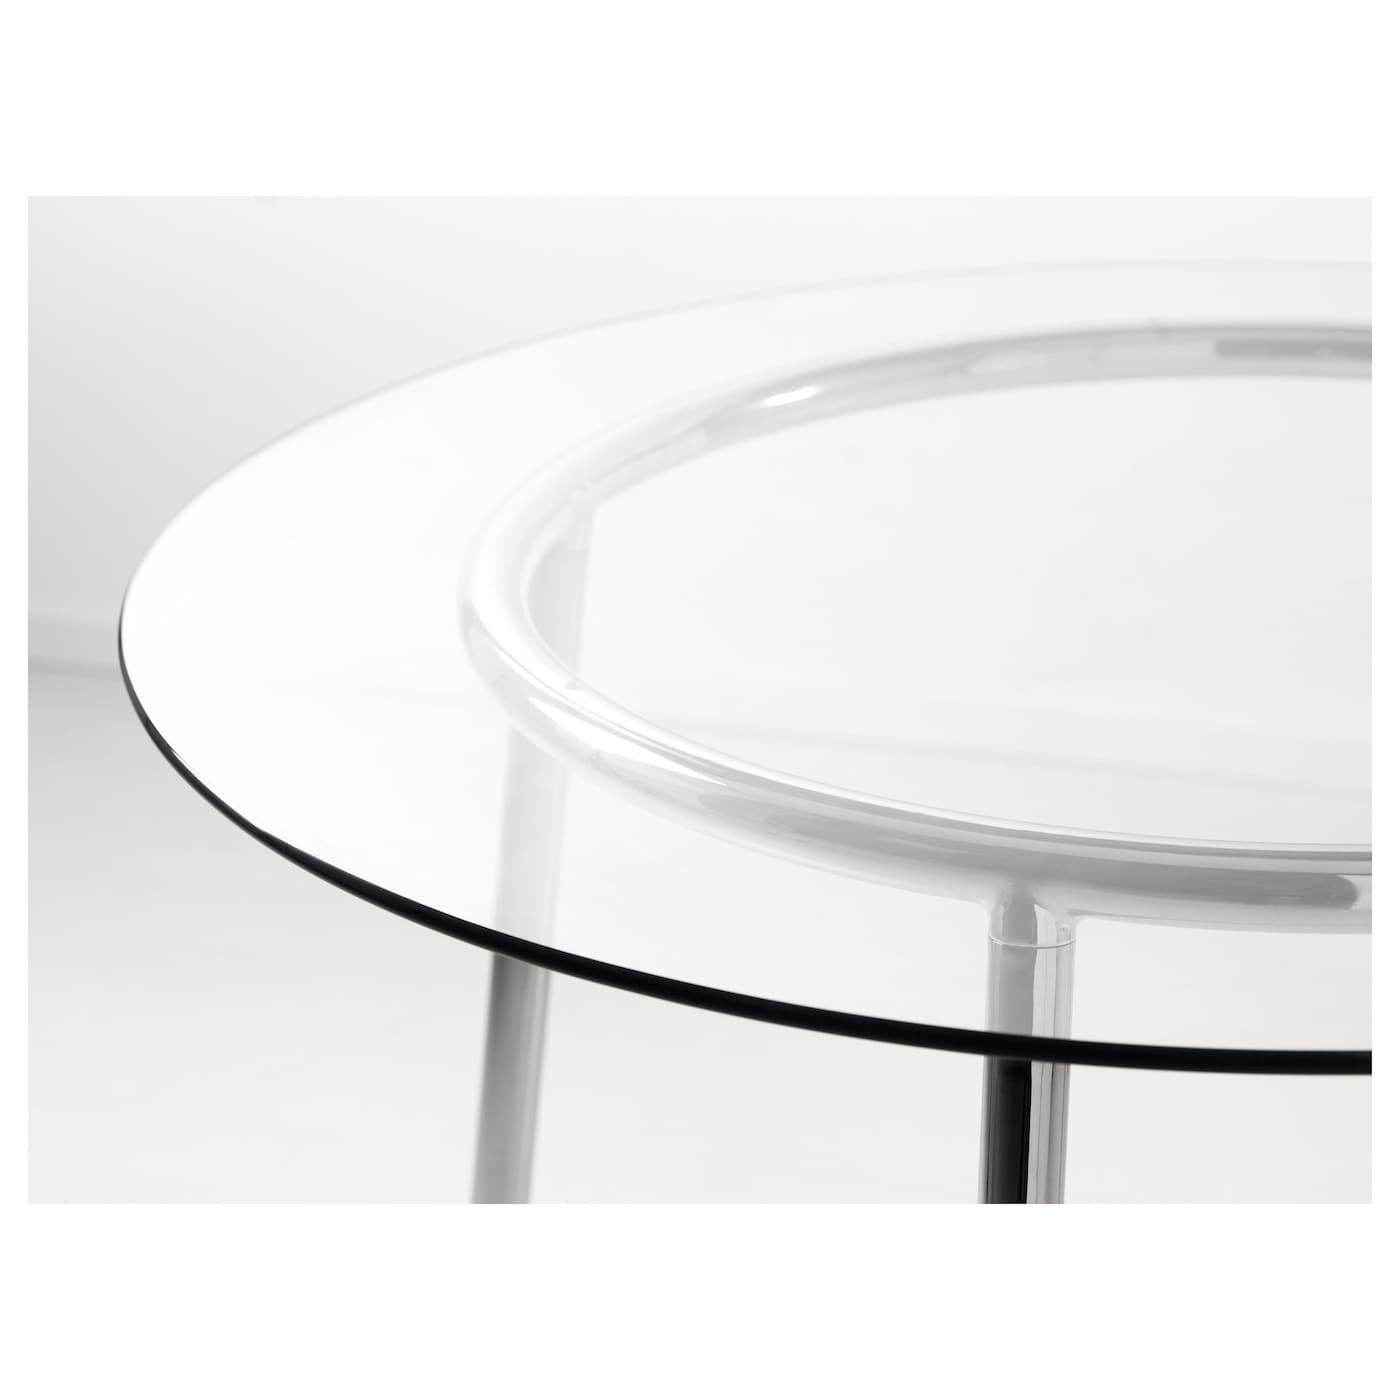 Salmi table glass chrome plated 105 cm ikea - Tavoli rotondi ikea ...